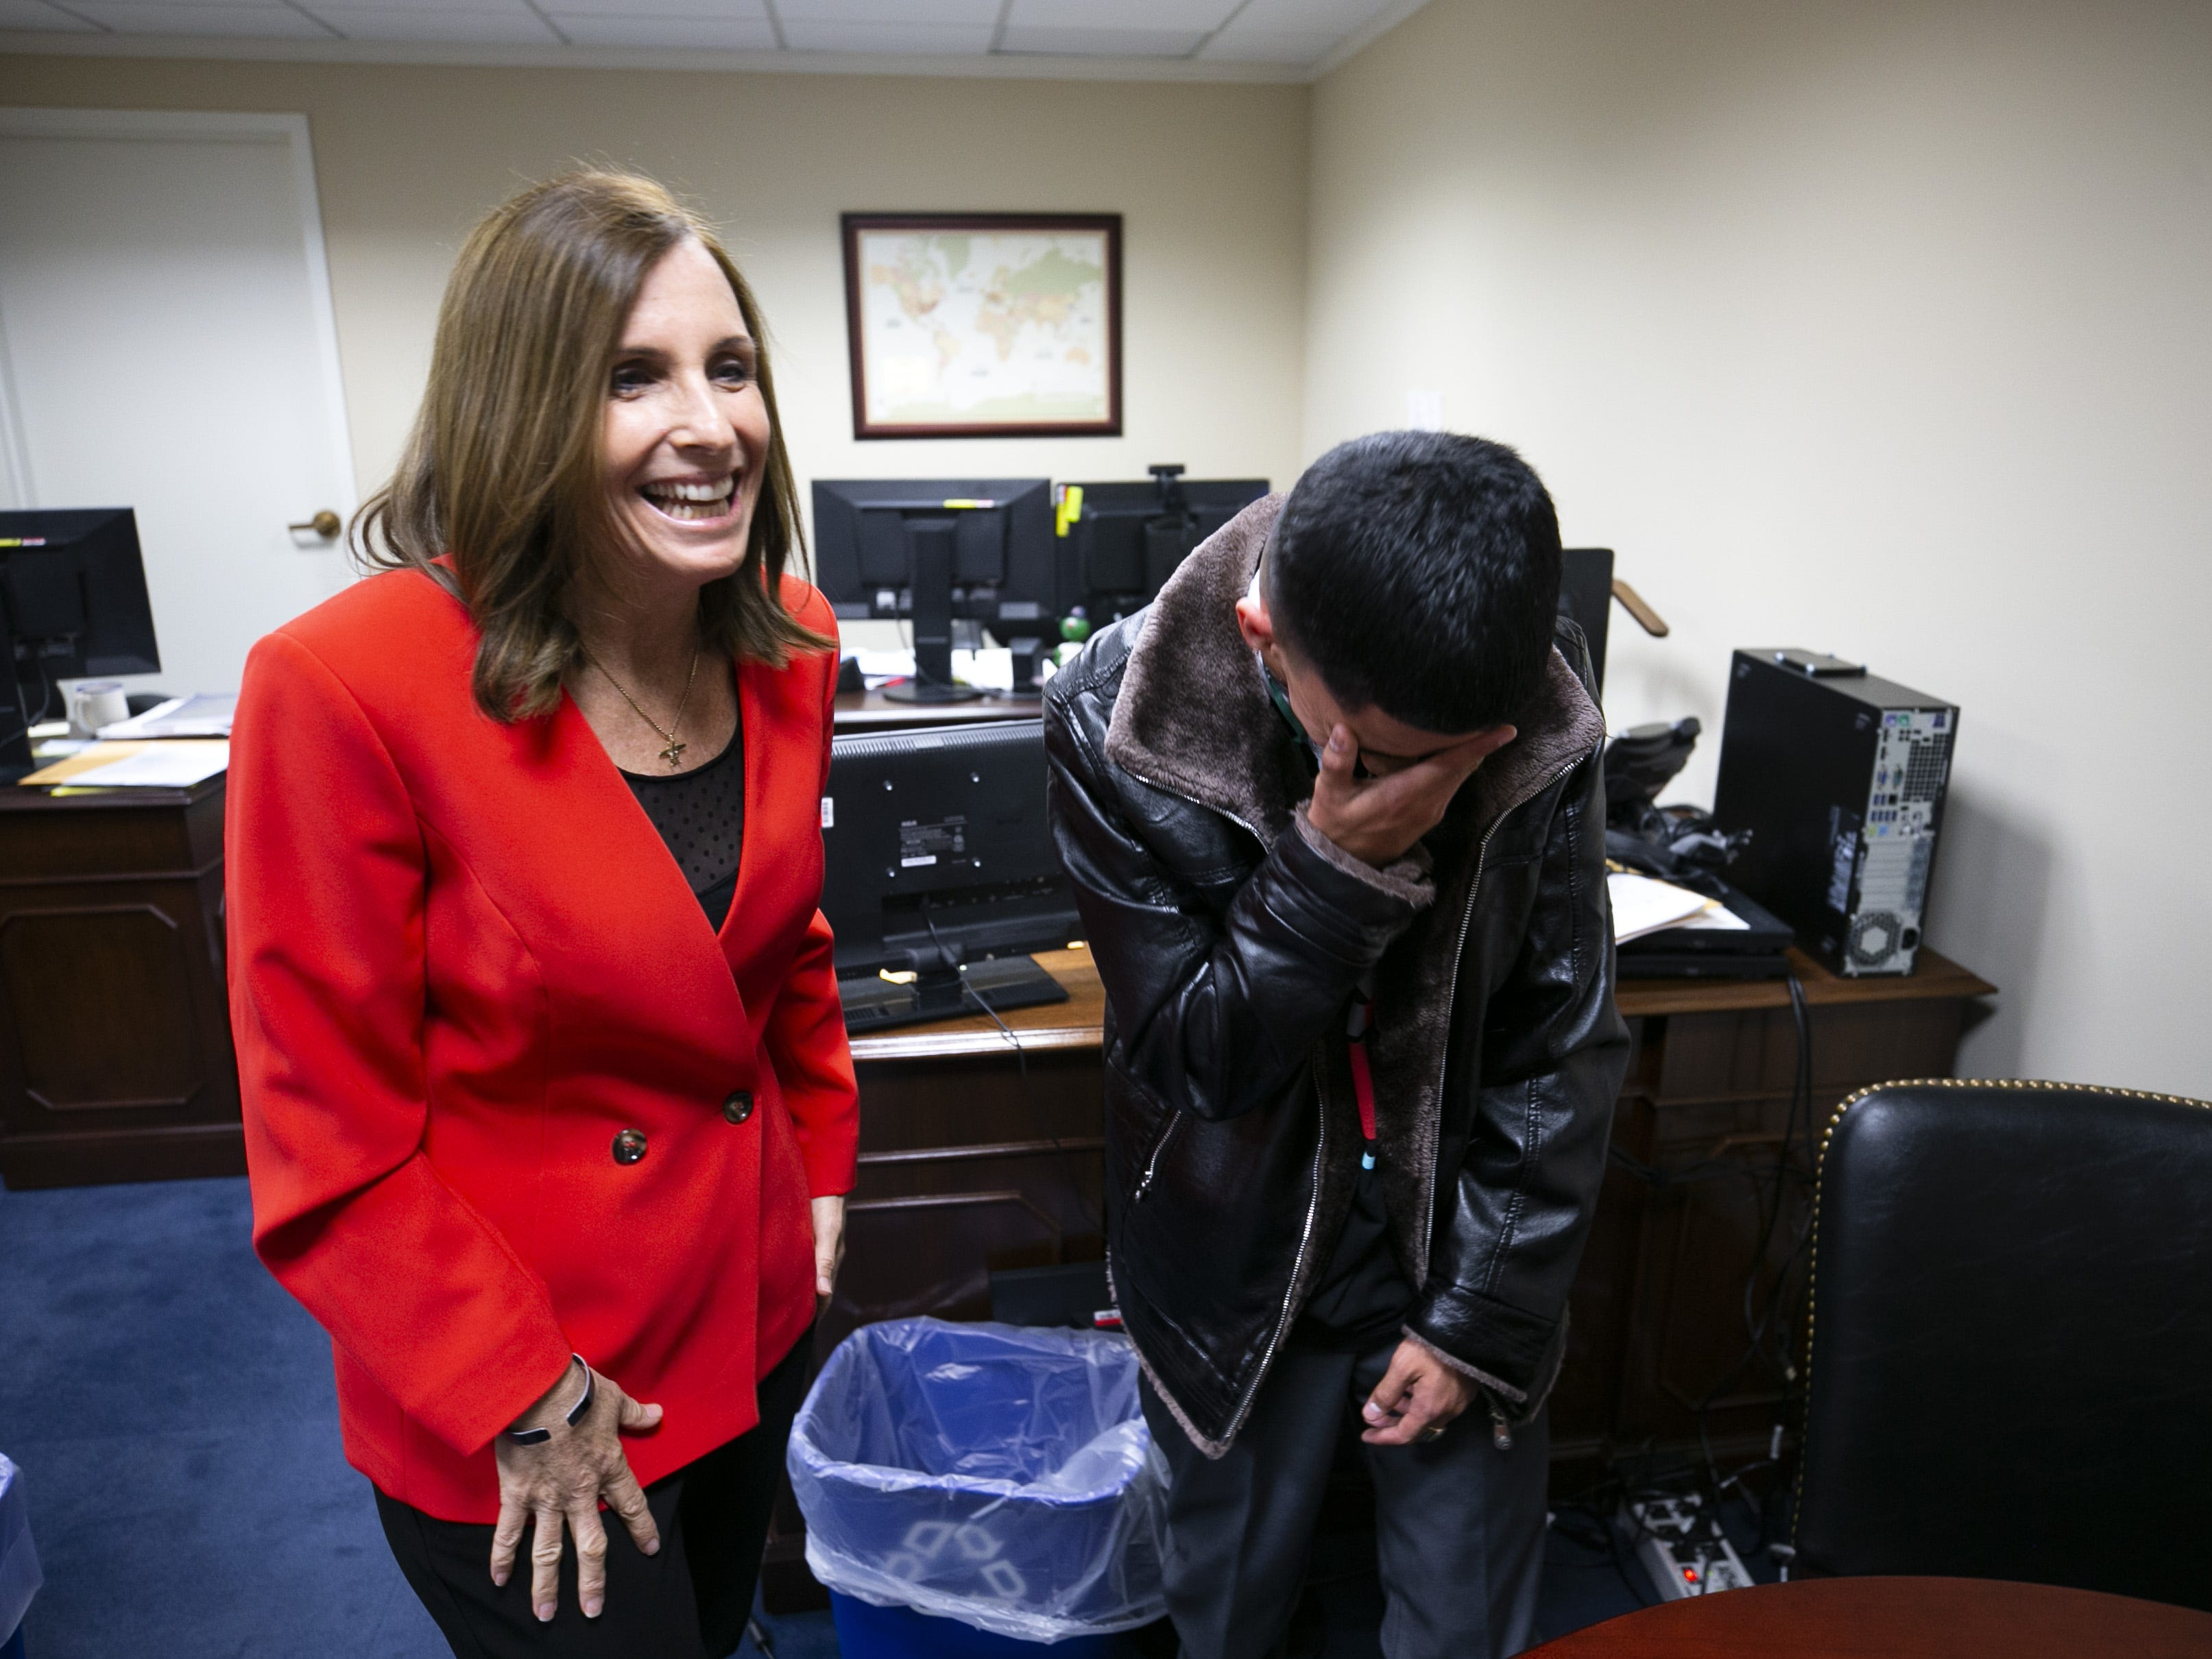 U.S. Sen. Martha McSally, R-Ariz., laughs with Isaiah Acosta, a 19-year-old rapper from Phoenix, at McSally's office at the Dirksen Senate Office Building in Washington, D.C., on Feb. 5, 2019. Acosta will be McSally's guest at the State of the Union.